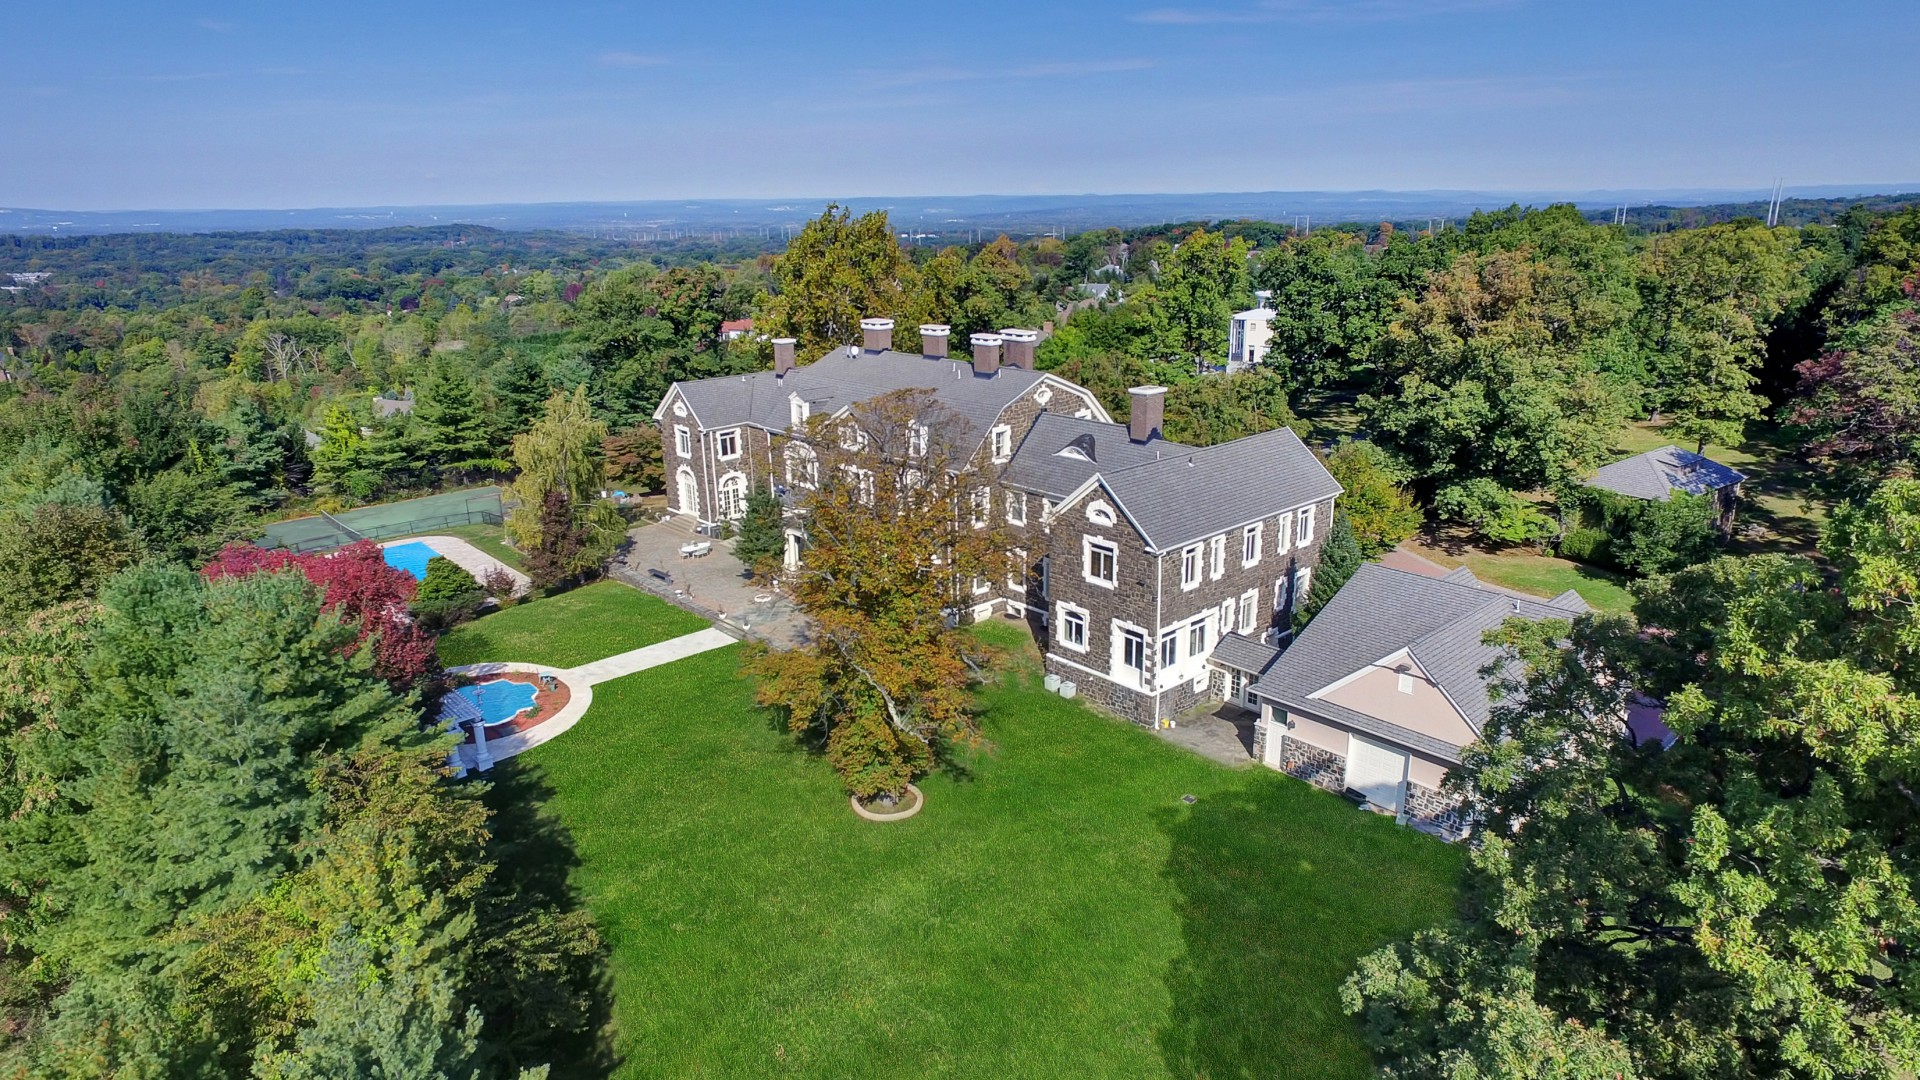 Maison unifamiliale pour l Vente à Georgian Style Mansion 8 Windermere Ct Livingston, New Jersey 07039 États-Unis